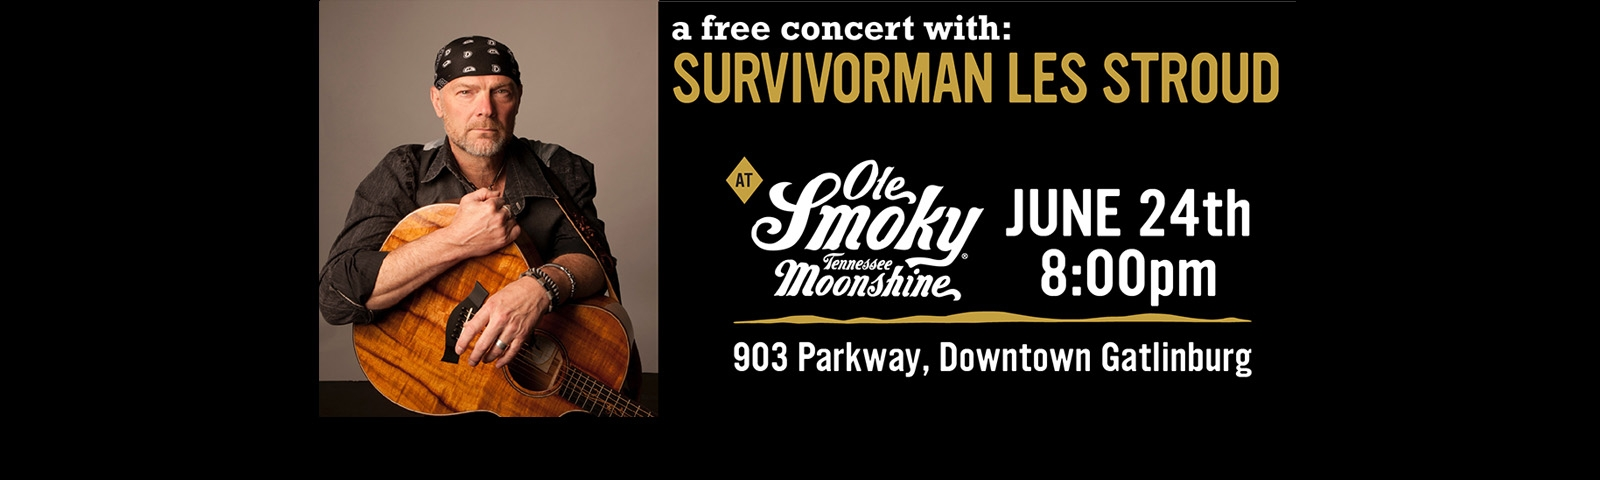 Concert with Survivorman Les Stroud